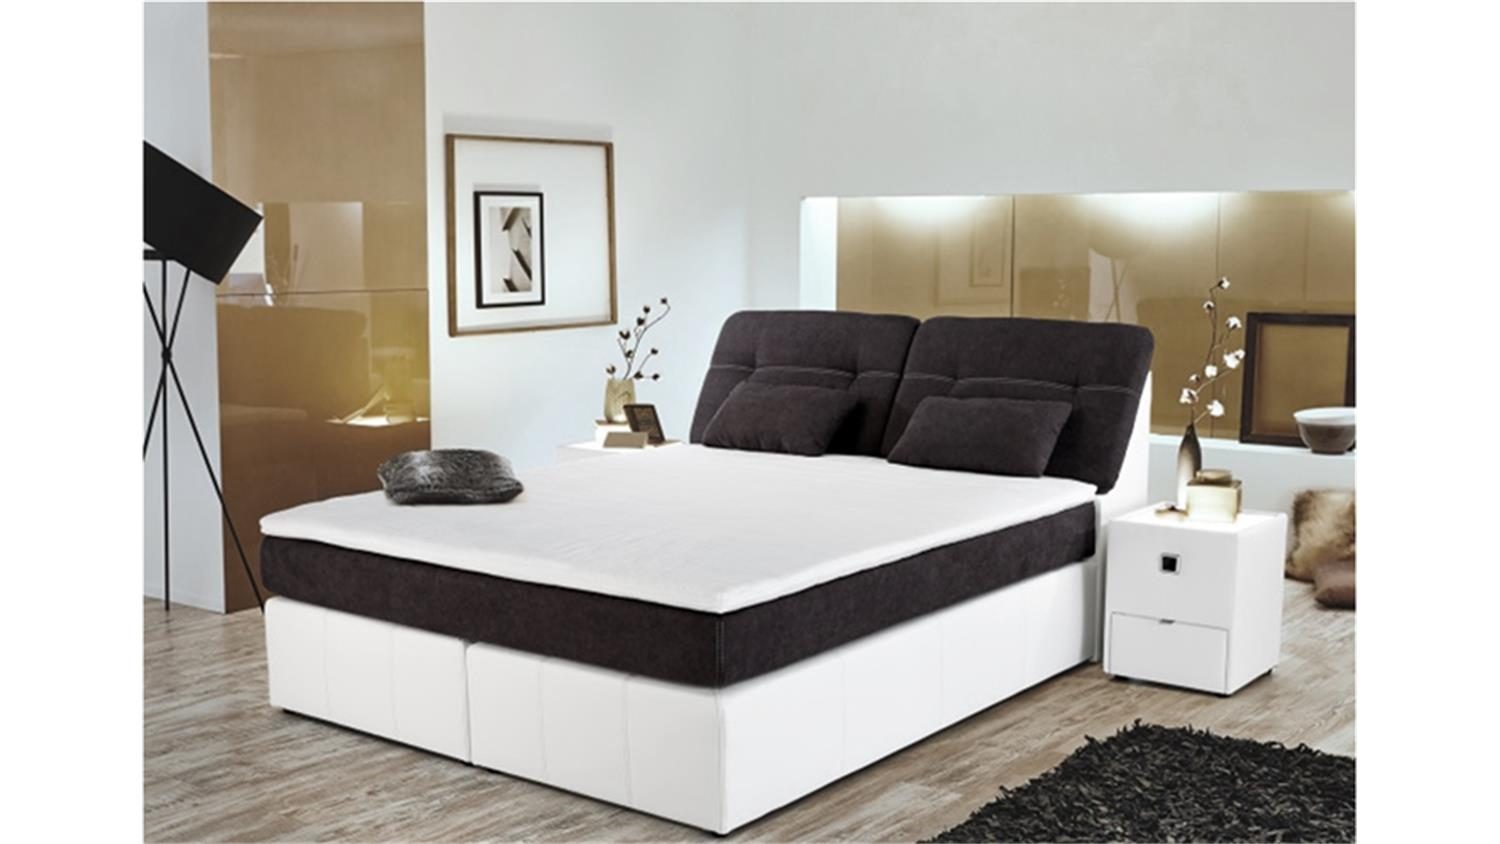 boxspringbett 180x200 victoria bett in grau und wei. Black Bedroom Furniture Sets. Home Design Ideas